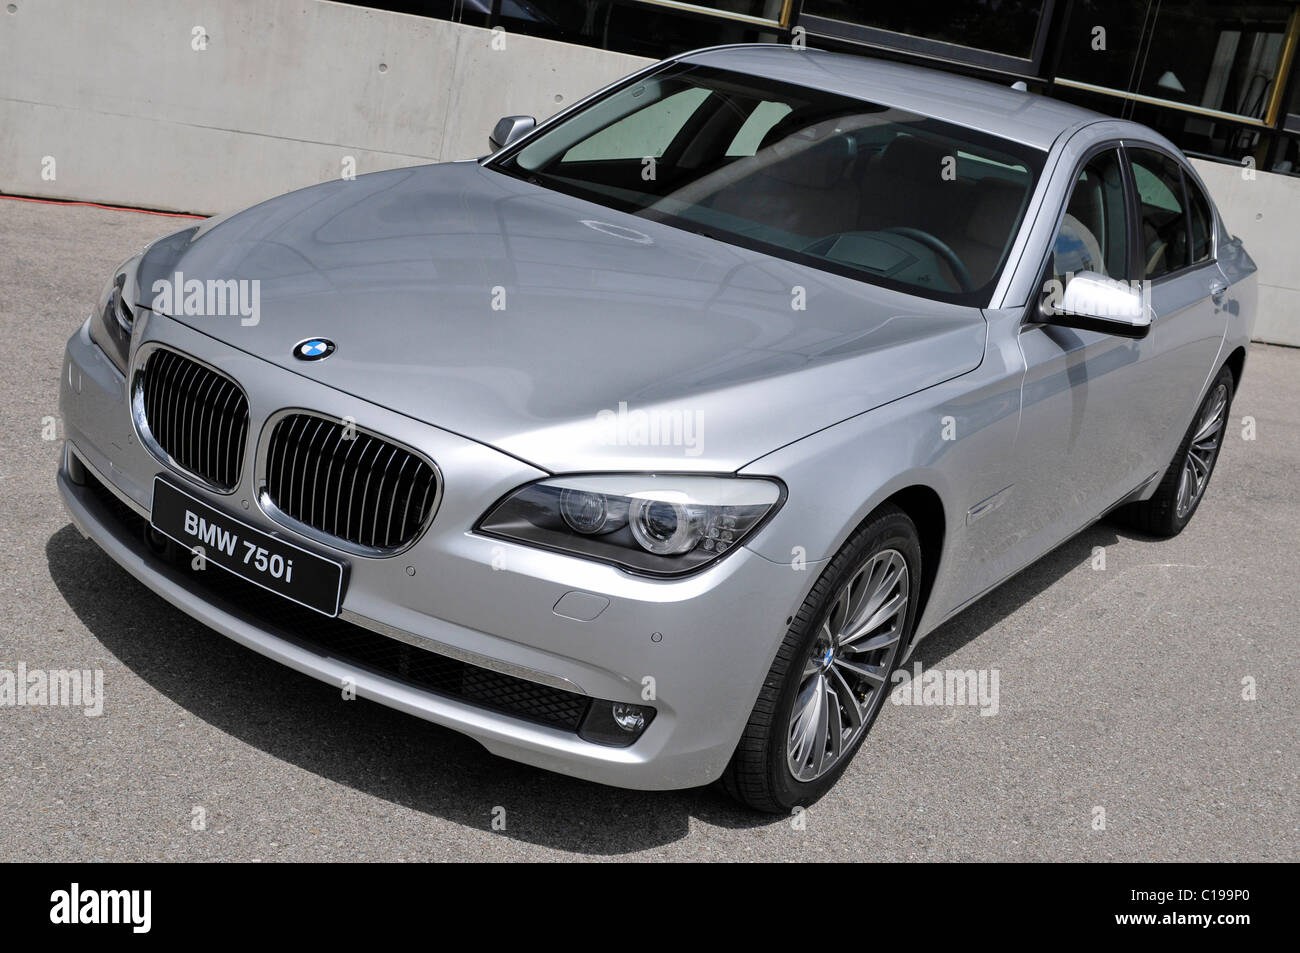 Location shot of a BMW 750i - Stock Image